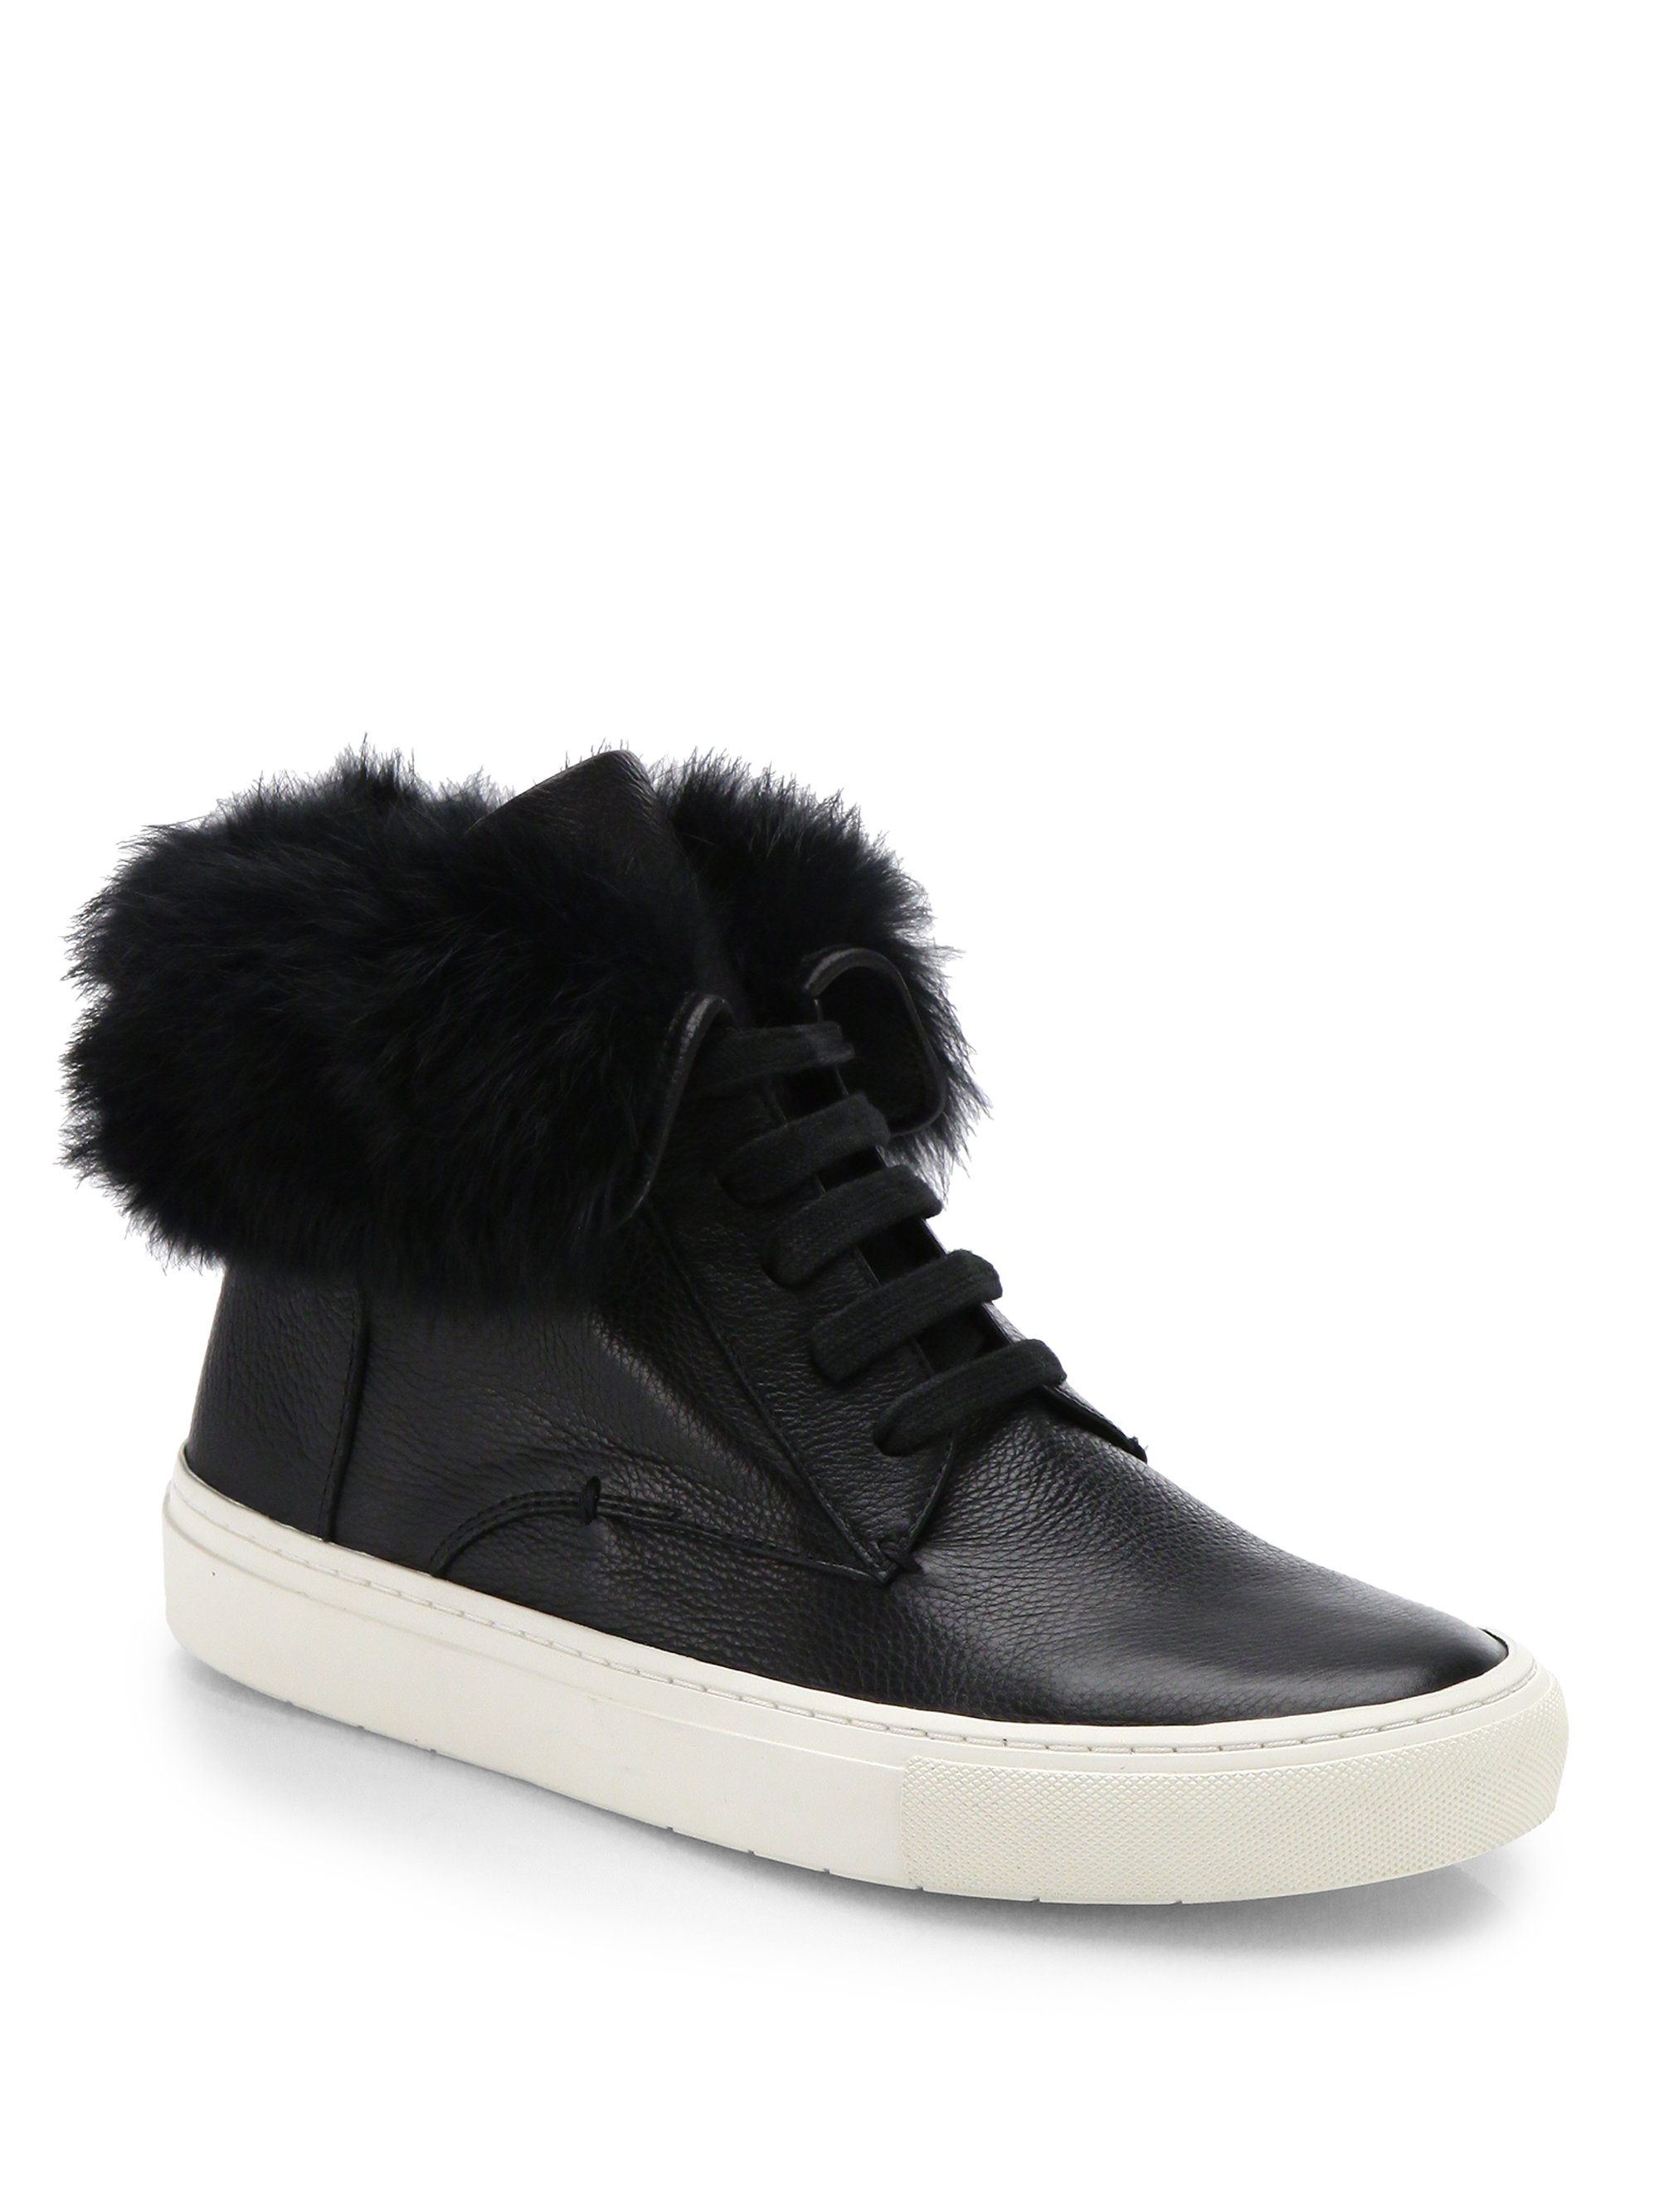 Vince Nyack Leather Amp Fur High Top Sneakers In Black Lyst